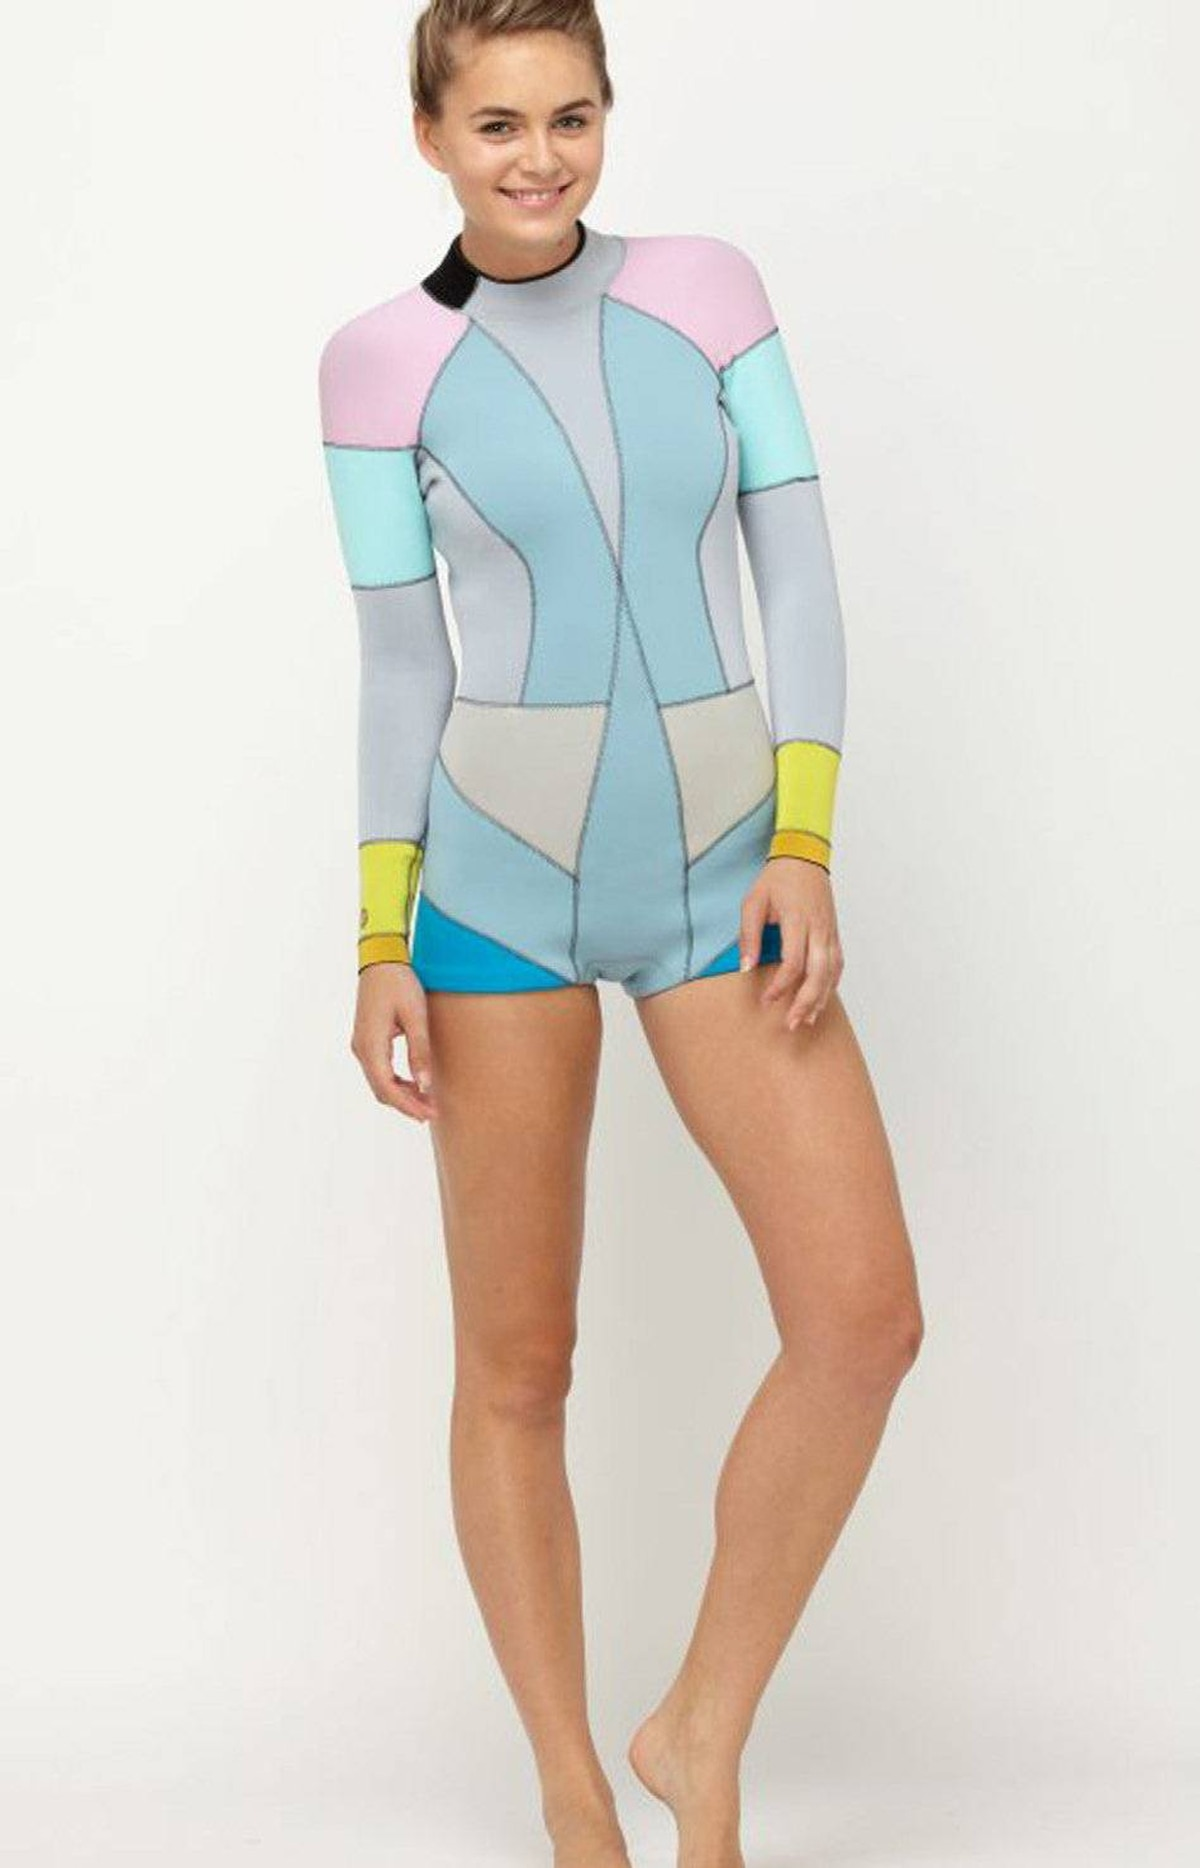 Colourful surfing attire Liven up your beach look in Cynthia Rowley's 2M Springsuit for Roxy. Colourful accents and a tailored design make this long-sleeved wetsuit a fashionable alternative to standard surf attire. Durable 2mm Fiber-Lite Neoprene construction and a zippered back stash pocket add to its functionality. $144.95 (U.S.); roxy.com